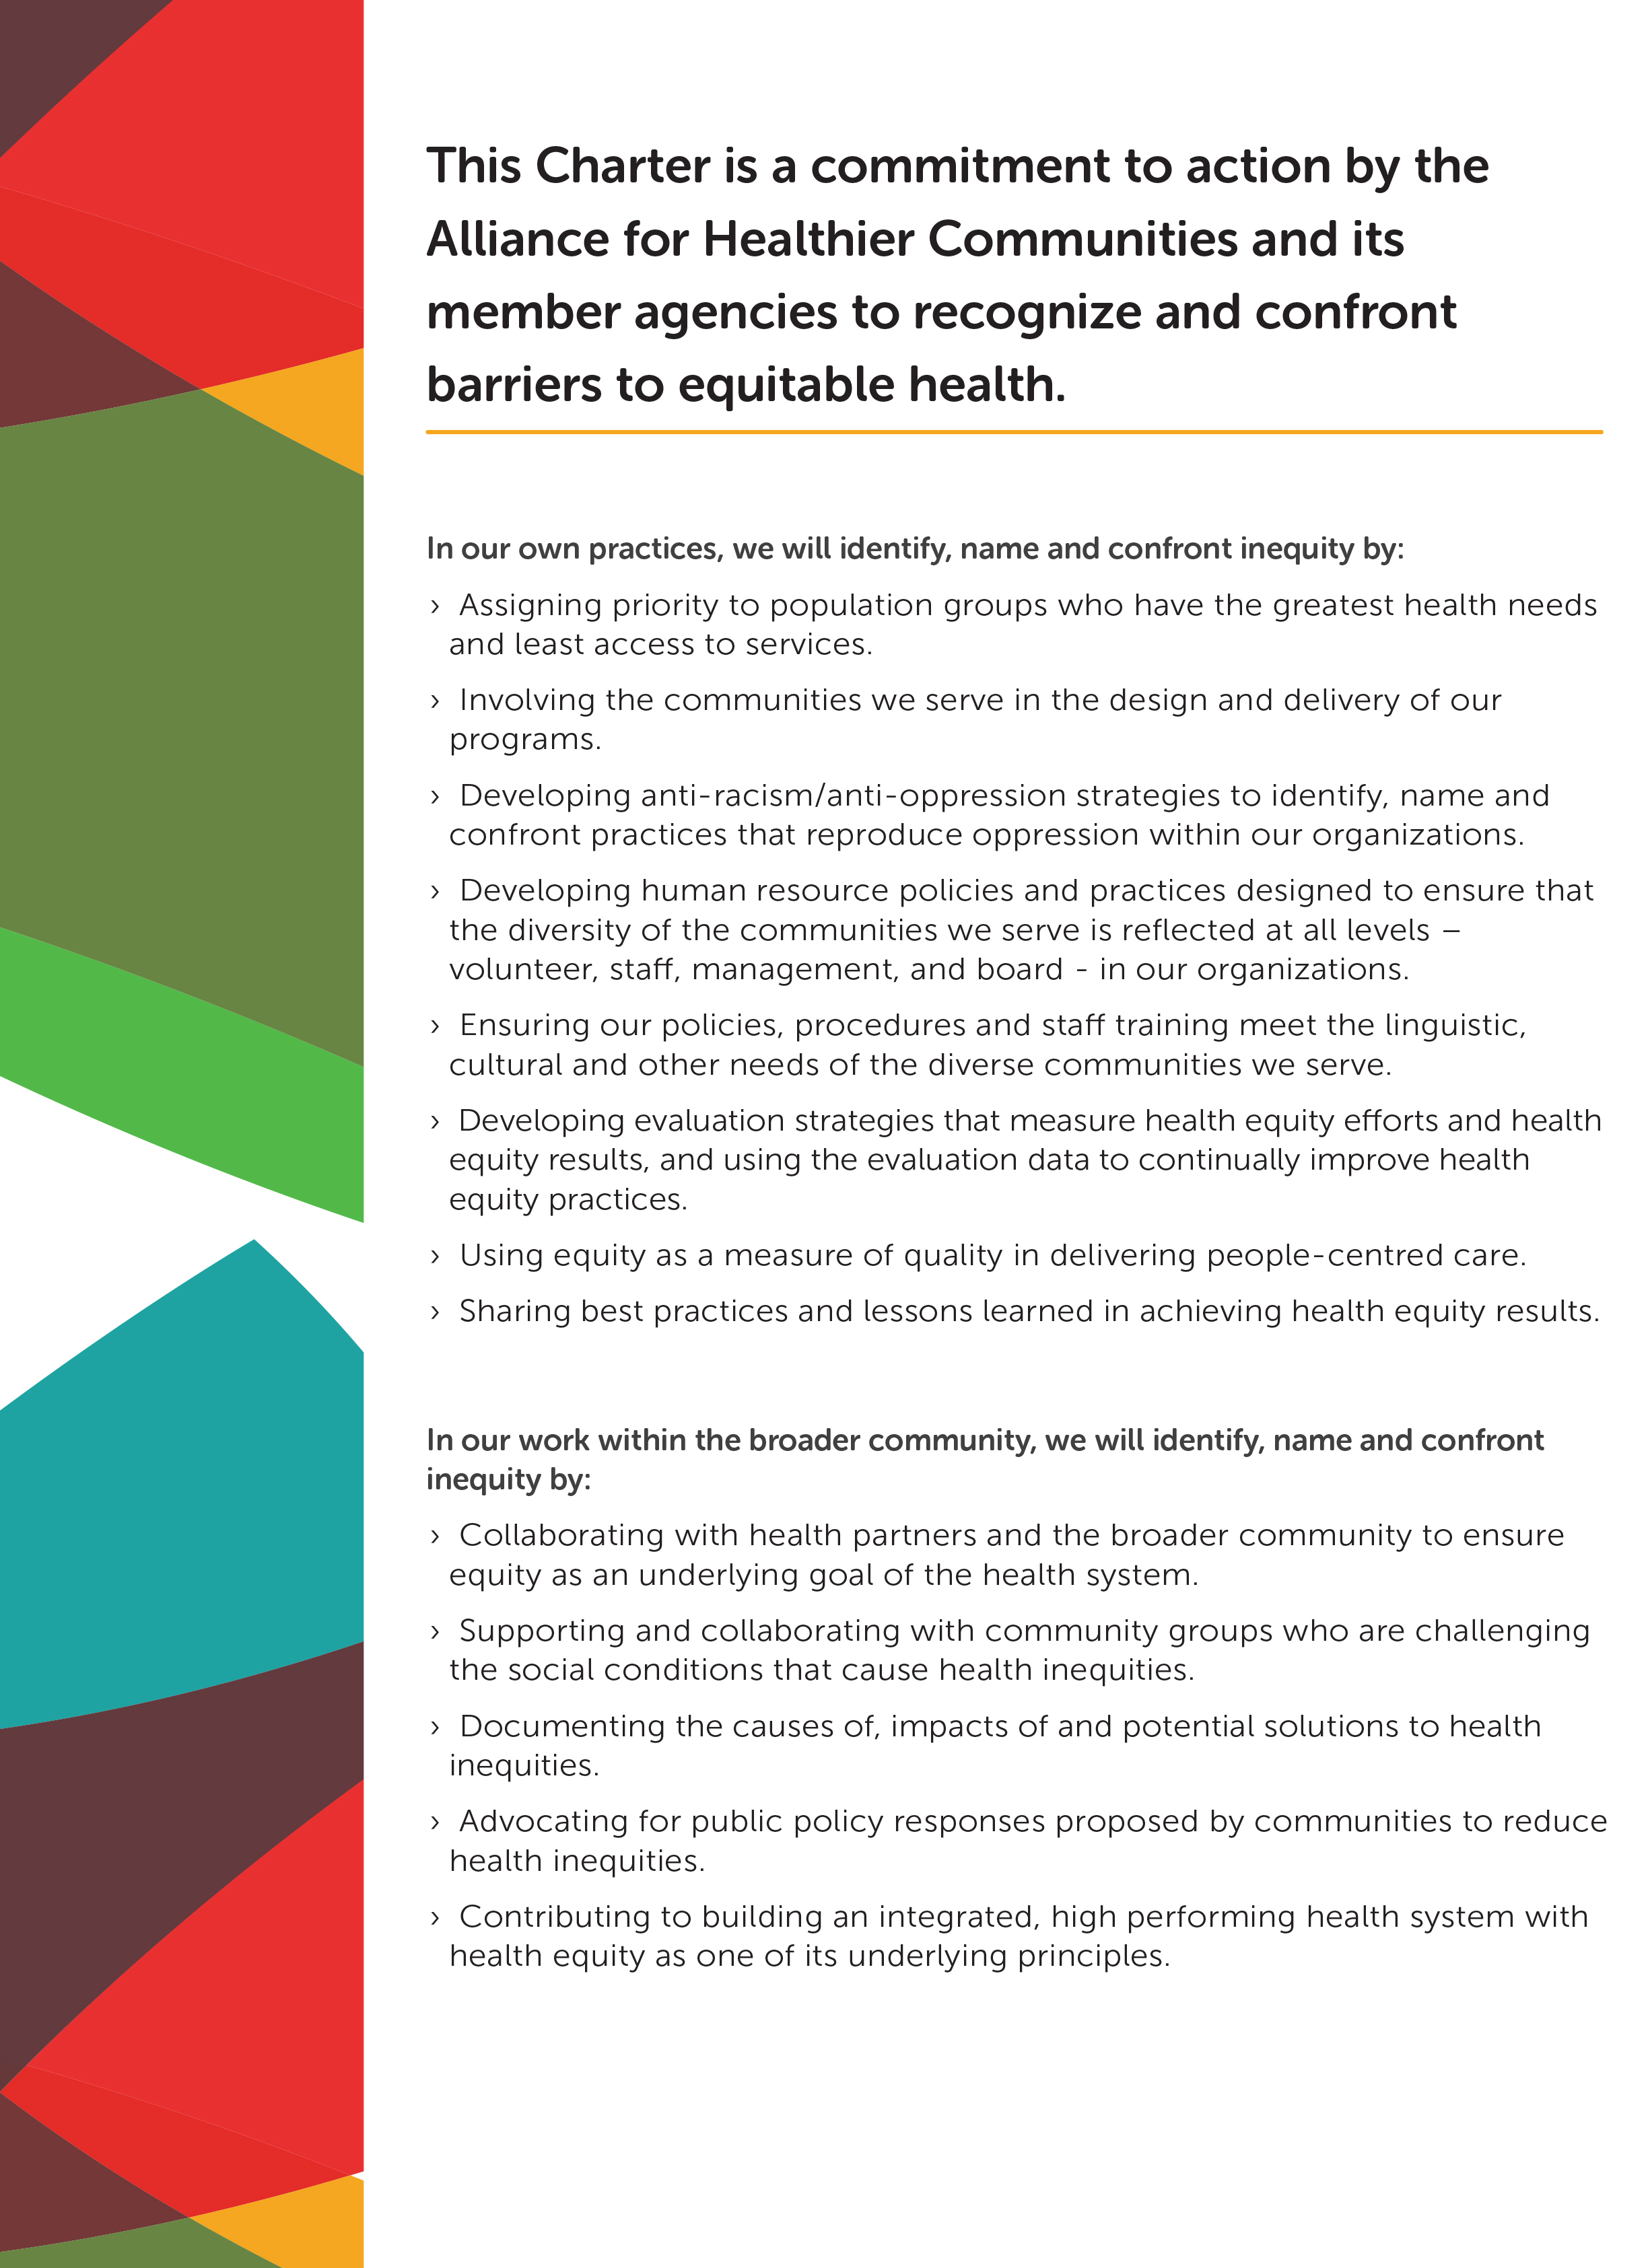 Health Equity Charter page 2